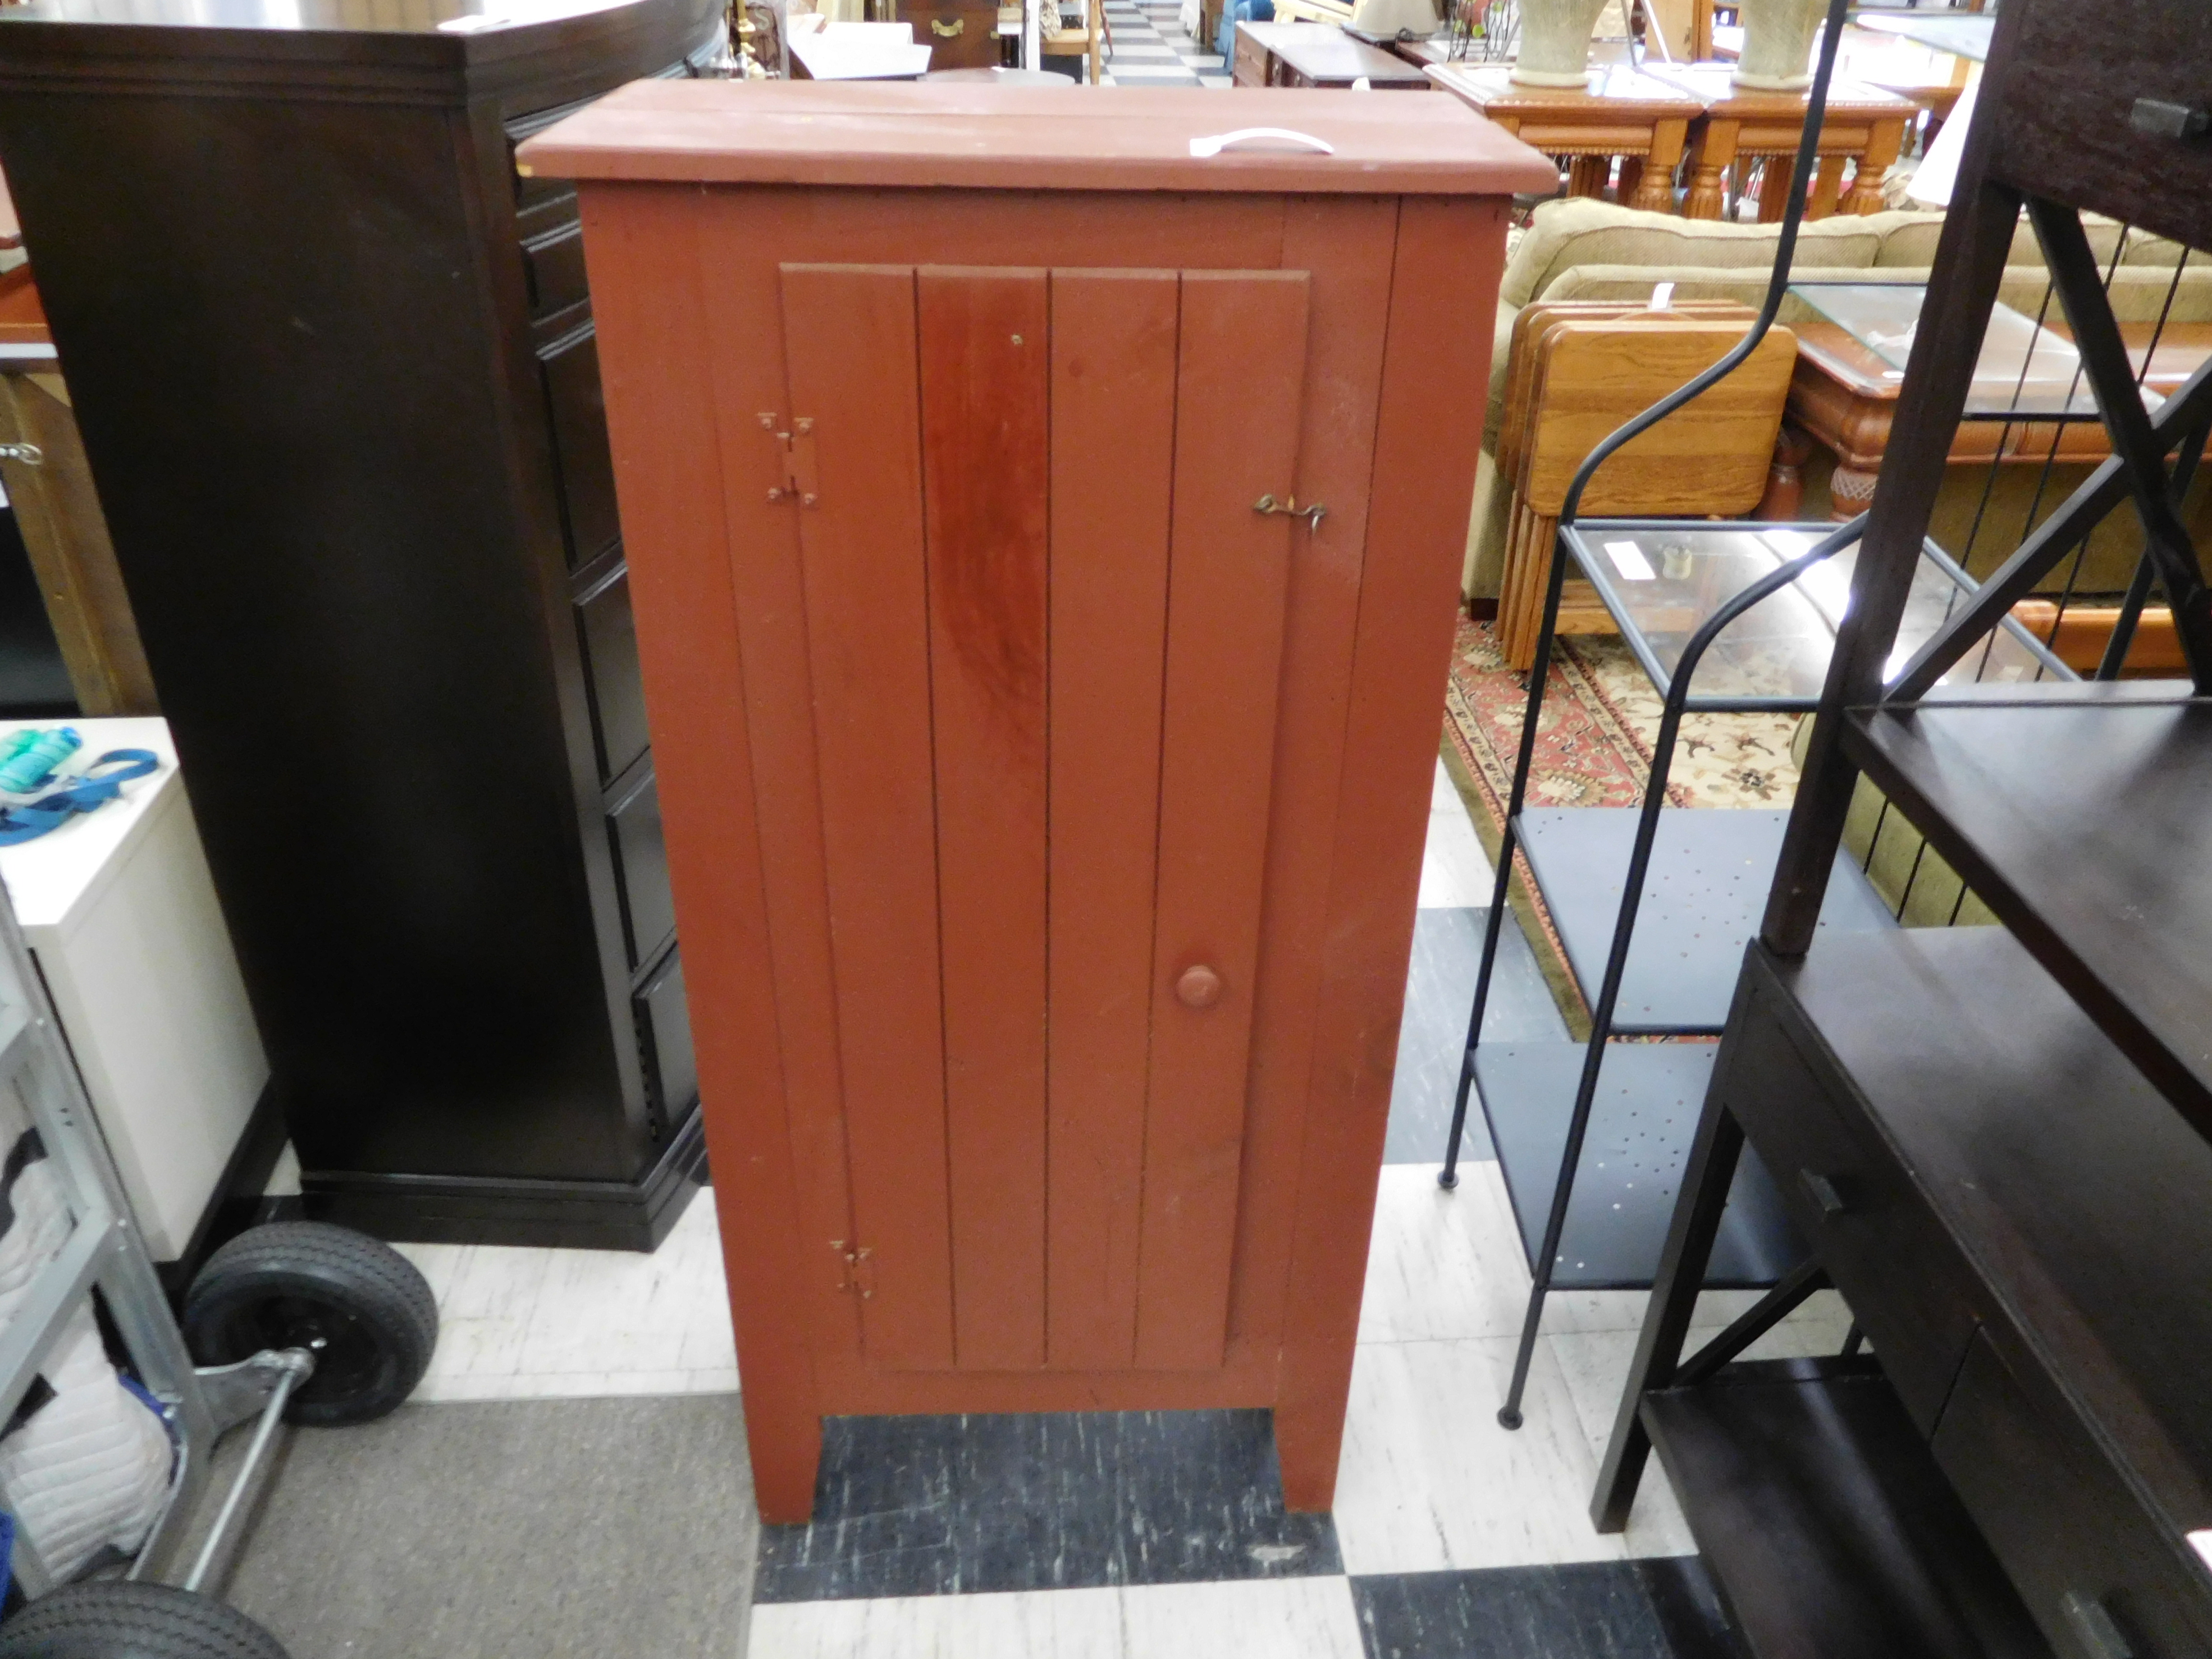 Rustic Wood Storage Cabinet with Door Latch and Inside Shelves